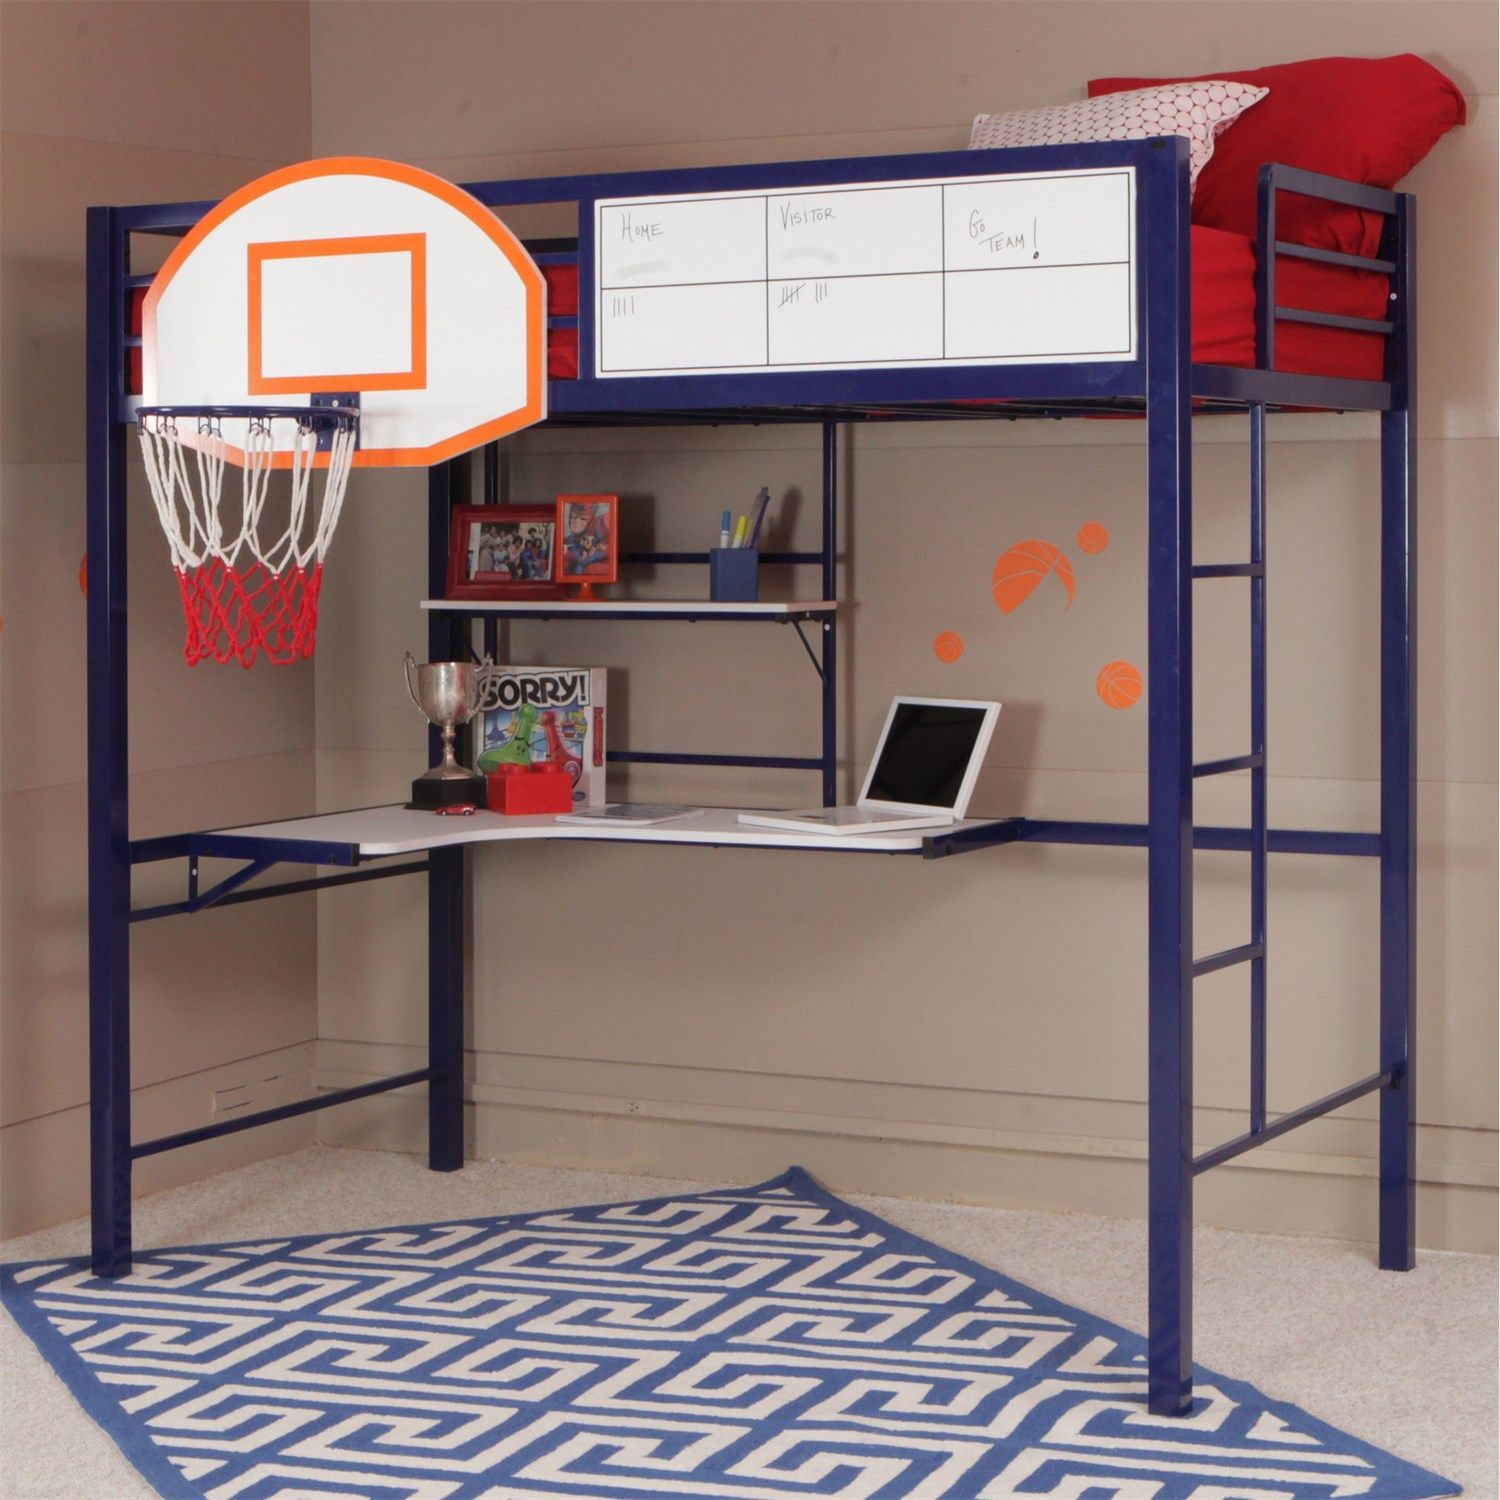 Powell Furniture 14Y2002Bb Hoops Basketball Bunk Bed  Powell Fascinating Basketball Hoop For Bedroom Decorating Inspiration